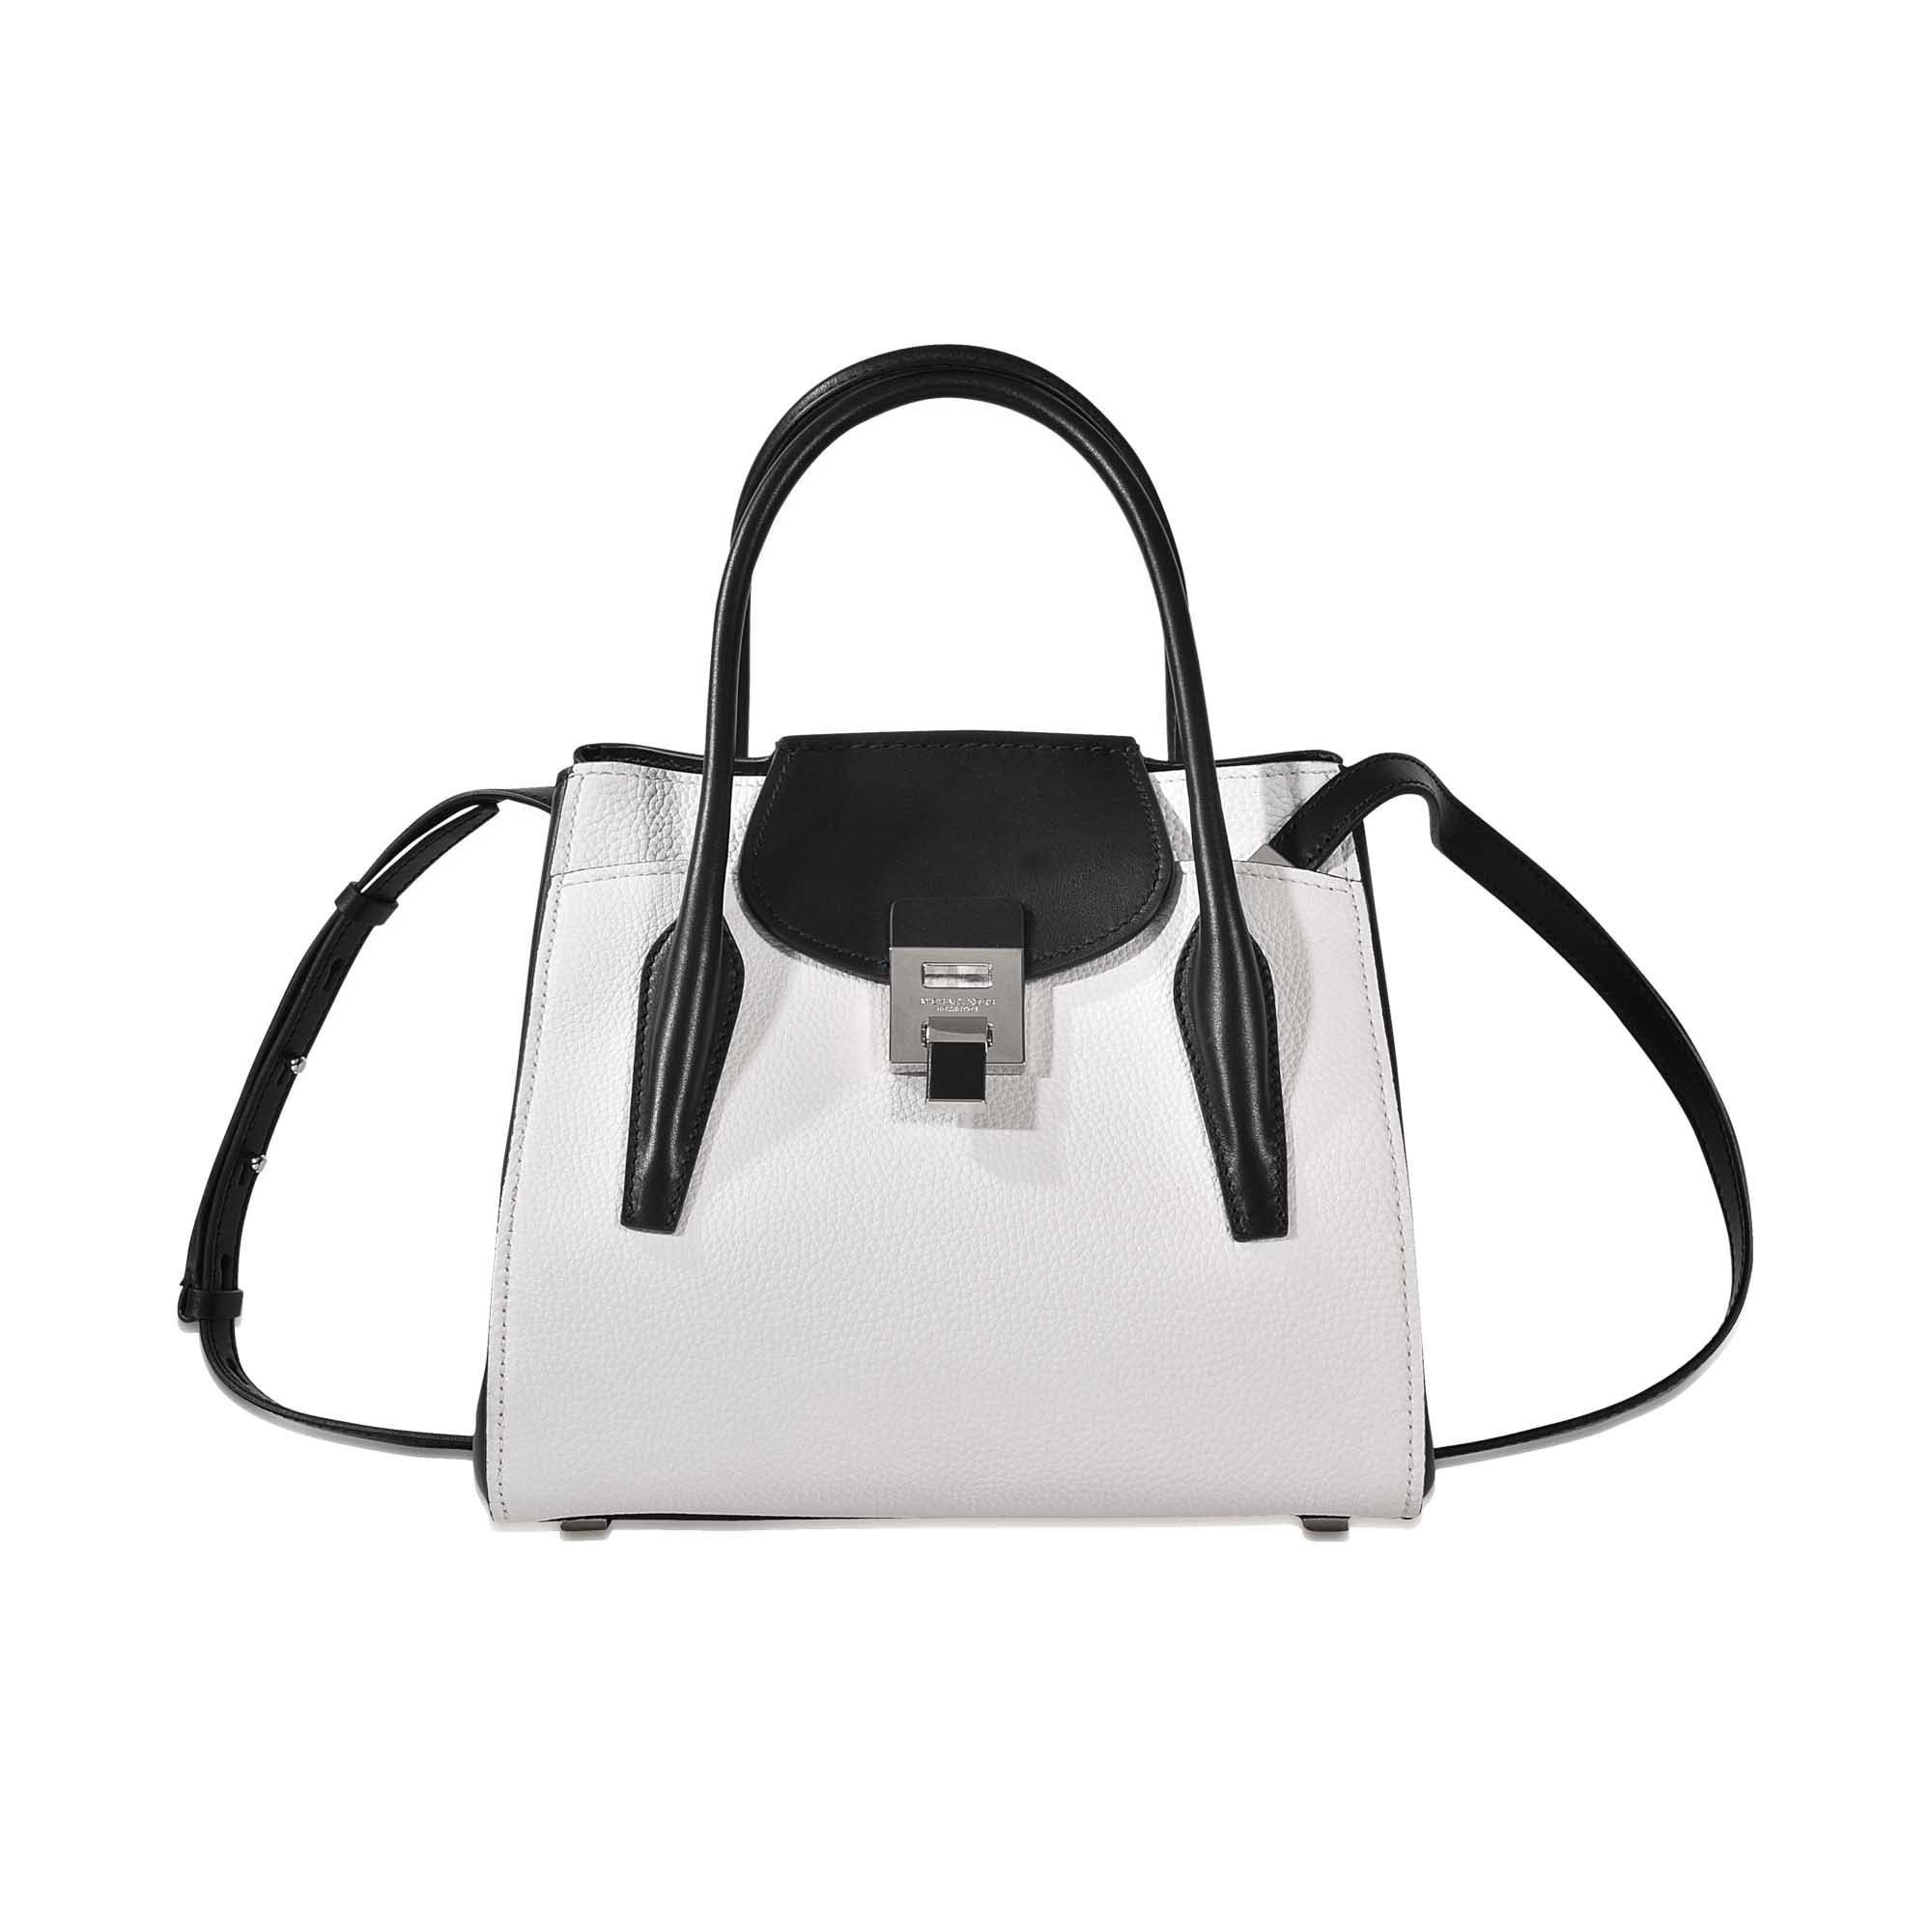 cb33bcc93414ab Michael Kors Bancroft Md Tote in White - Lyst